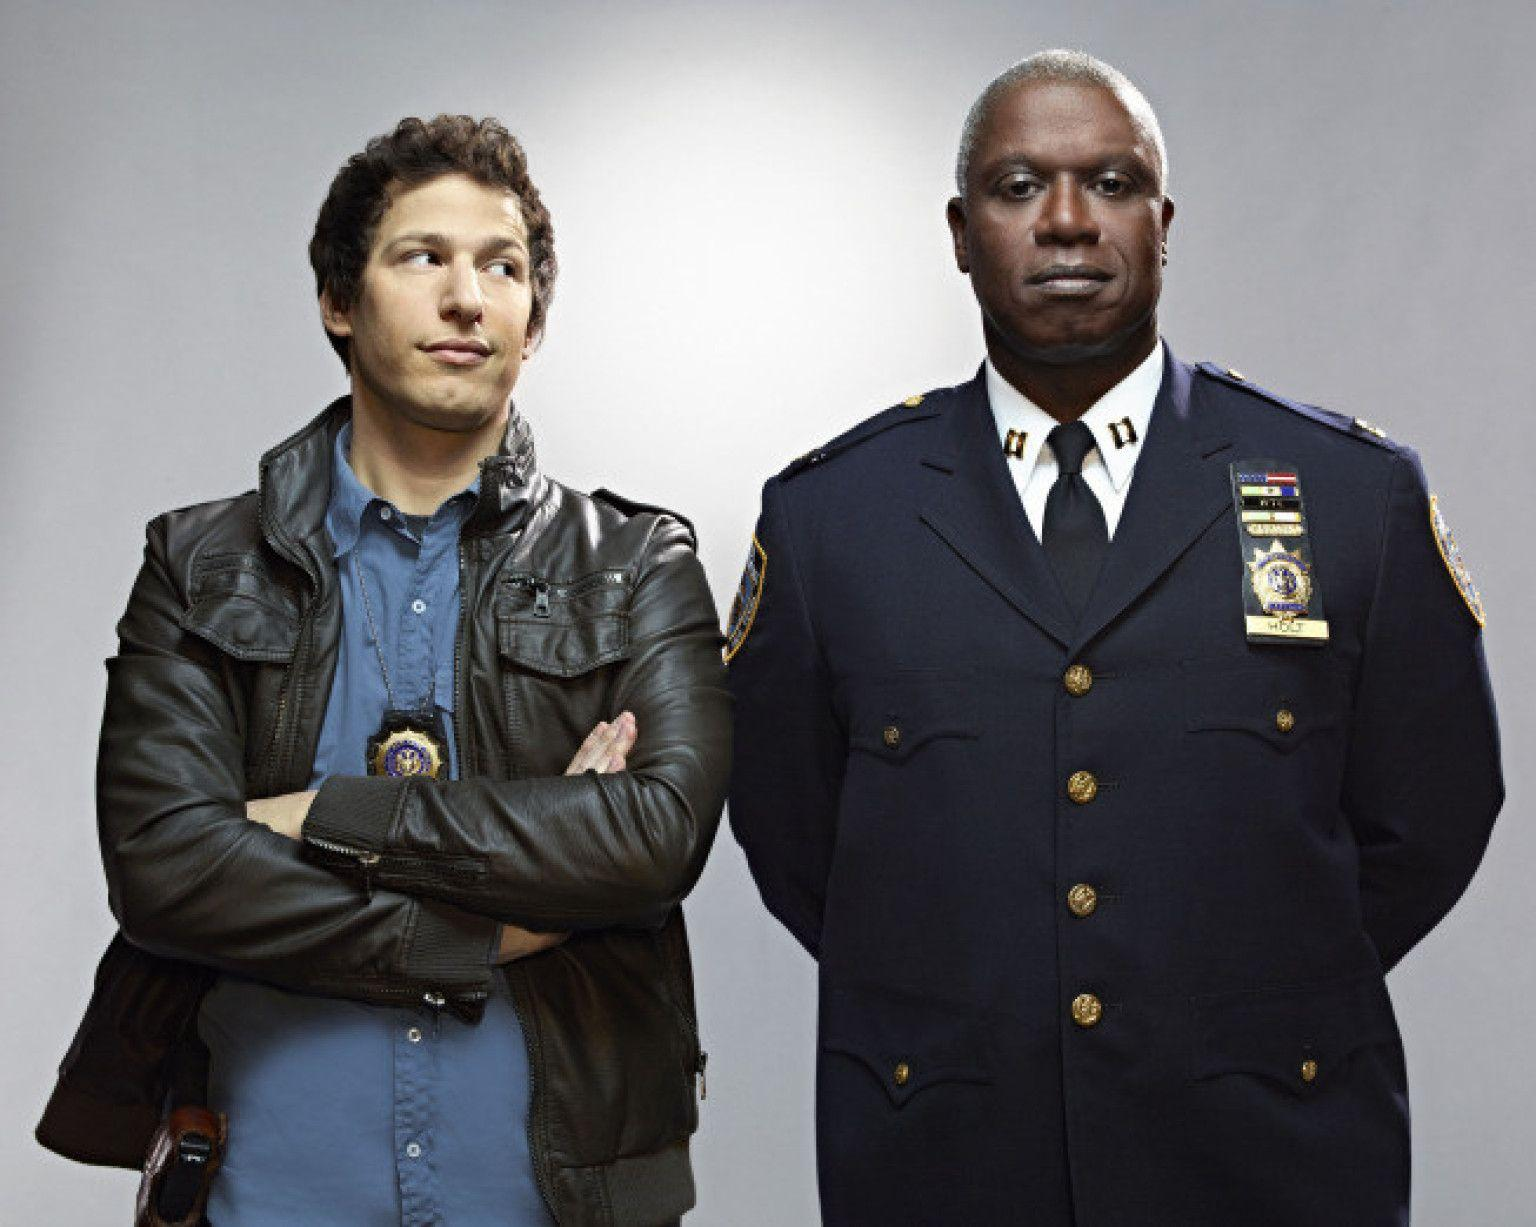 Brooklyn Nine-Nine' Review: Book These Cops On Suspicion Of Being ...